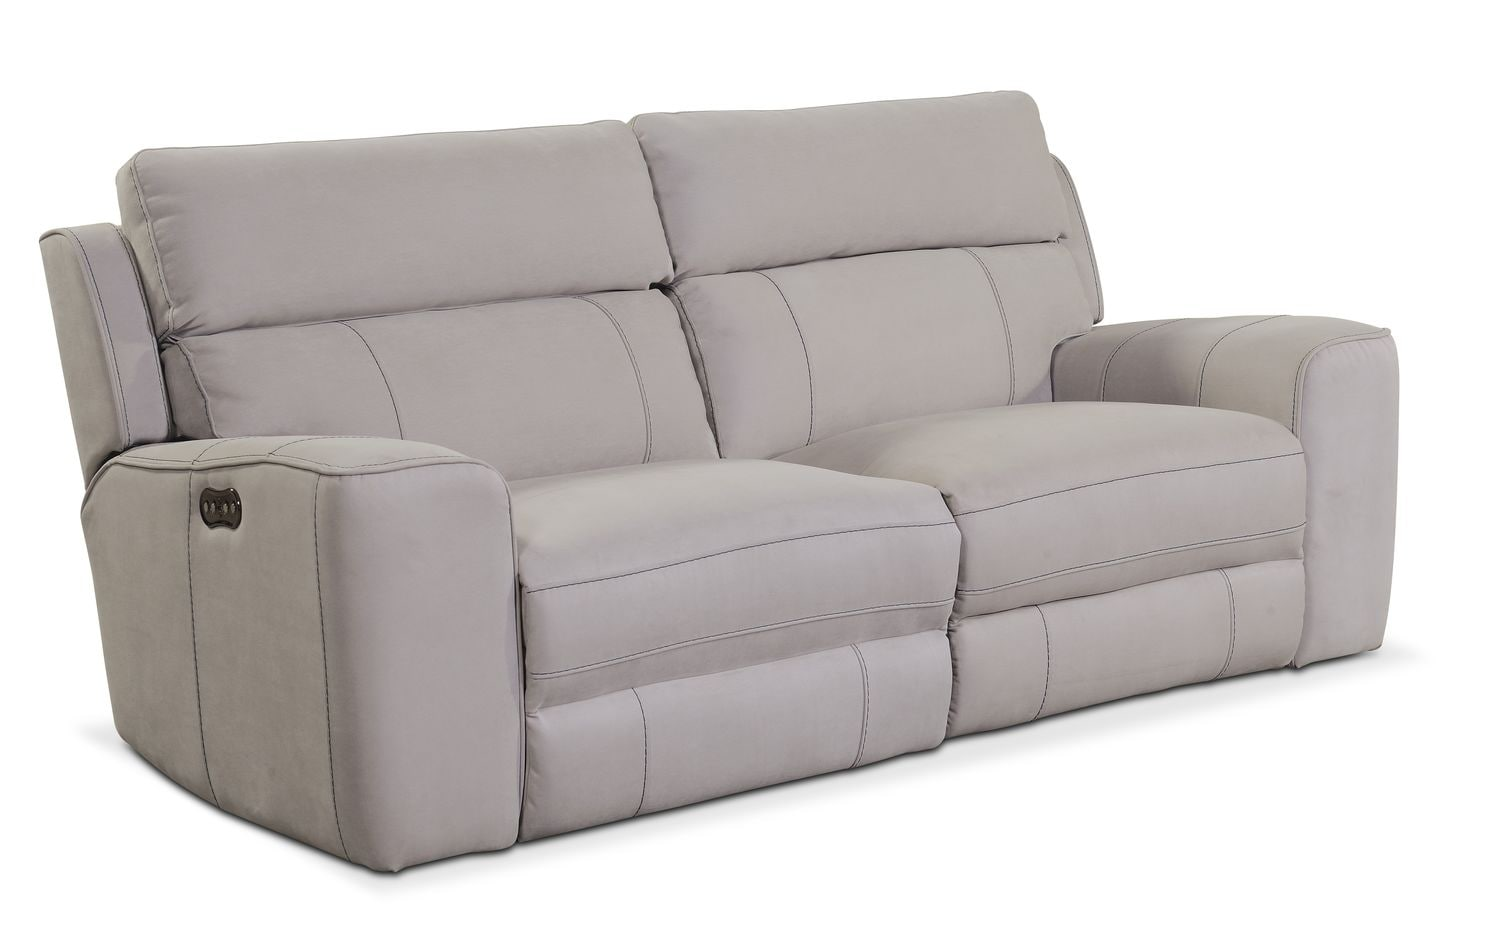 newport 2 piece power reclining sofa light gray american signature furniture. Black Bedroom Furniture Sets. Home Design Ideas